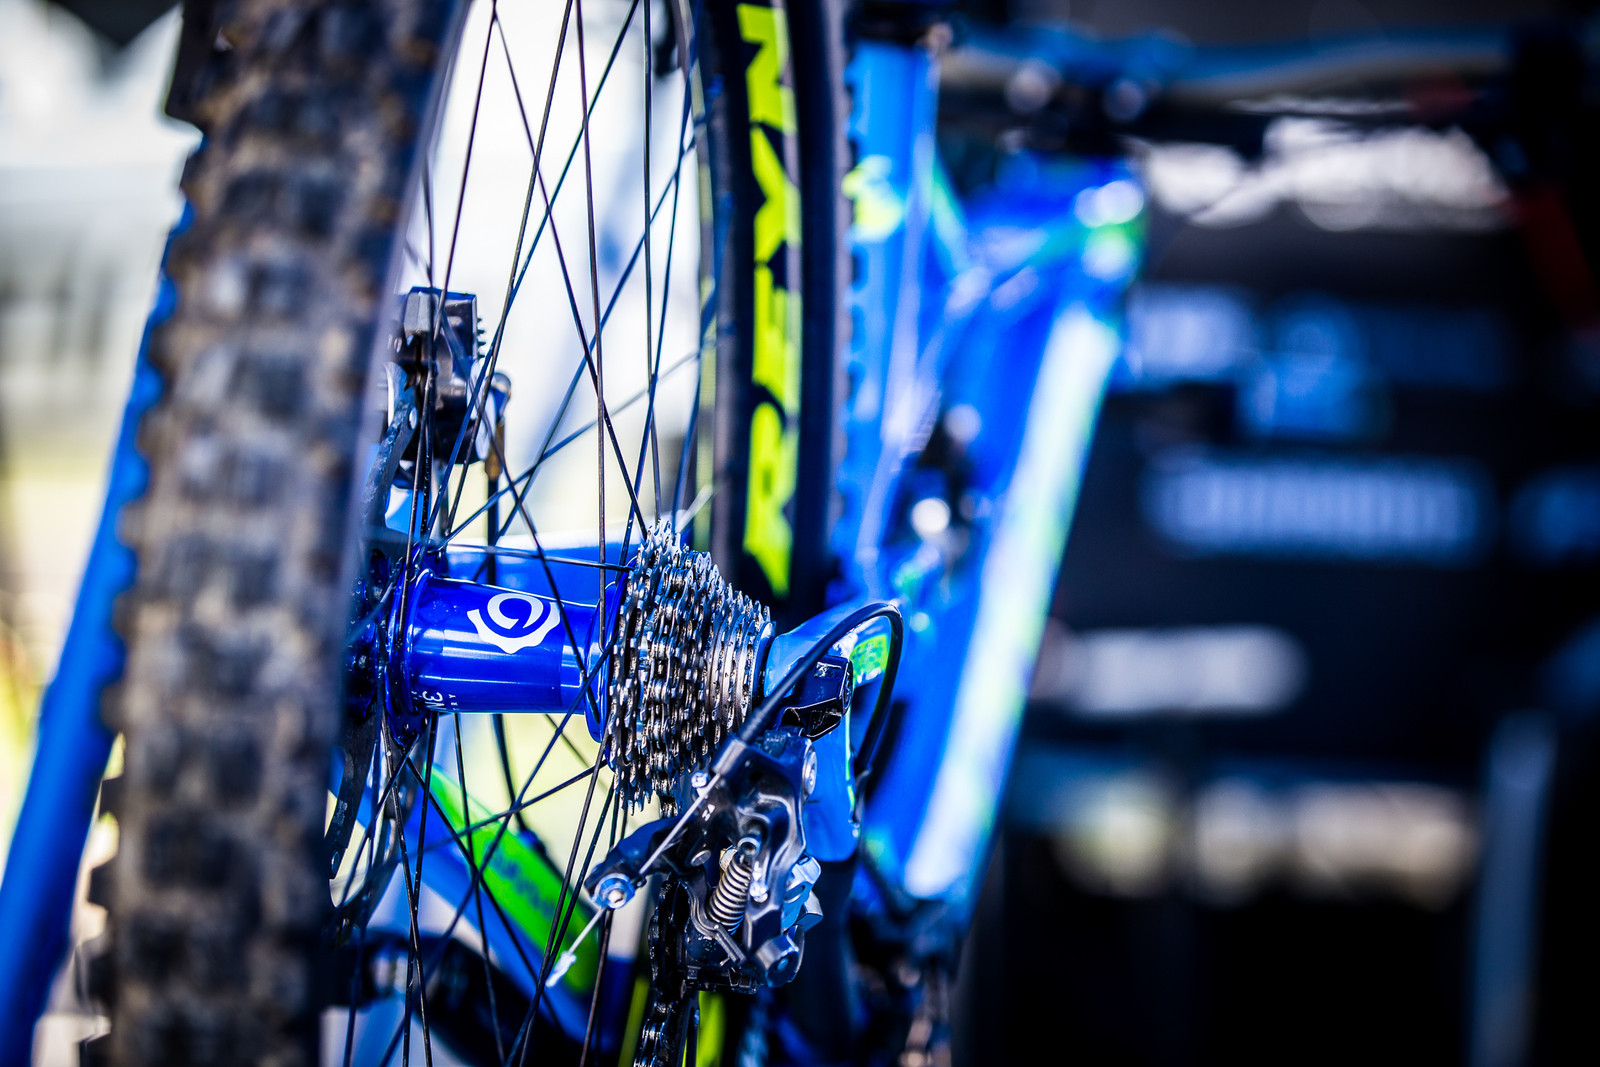 Moody Blues at Pivot - 2017 Leogang World Cup Pit Bits - Mountain Biking Pictures - Vital MTB